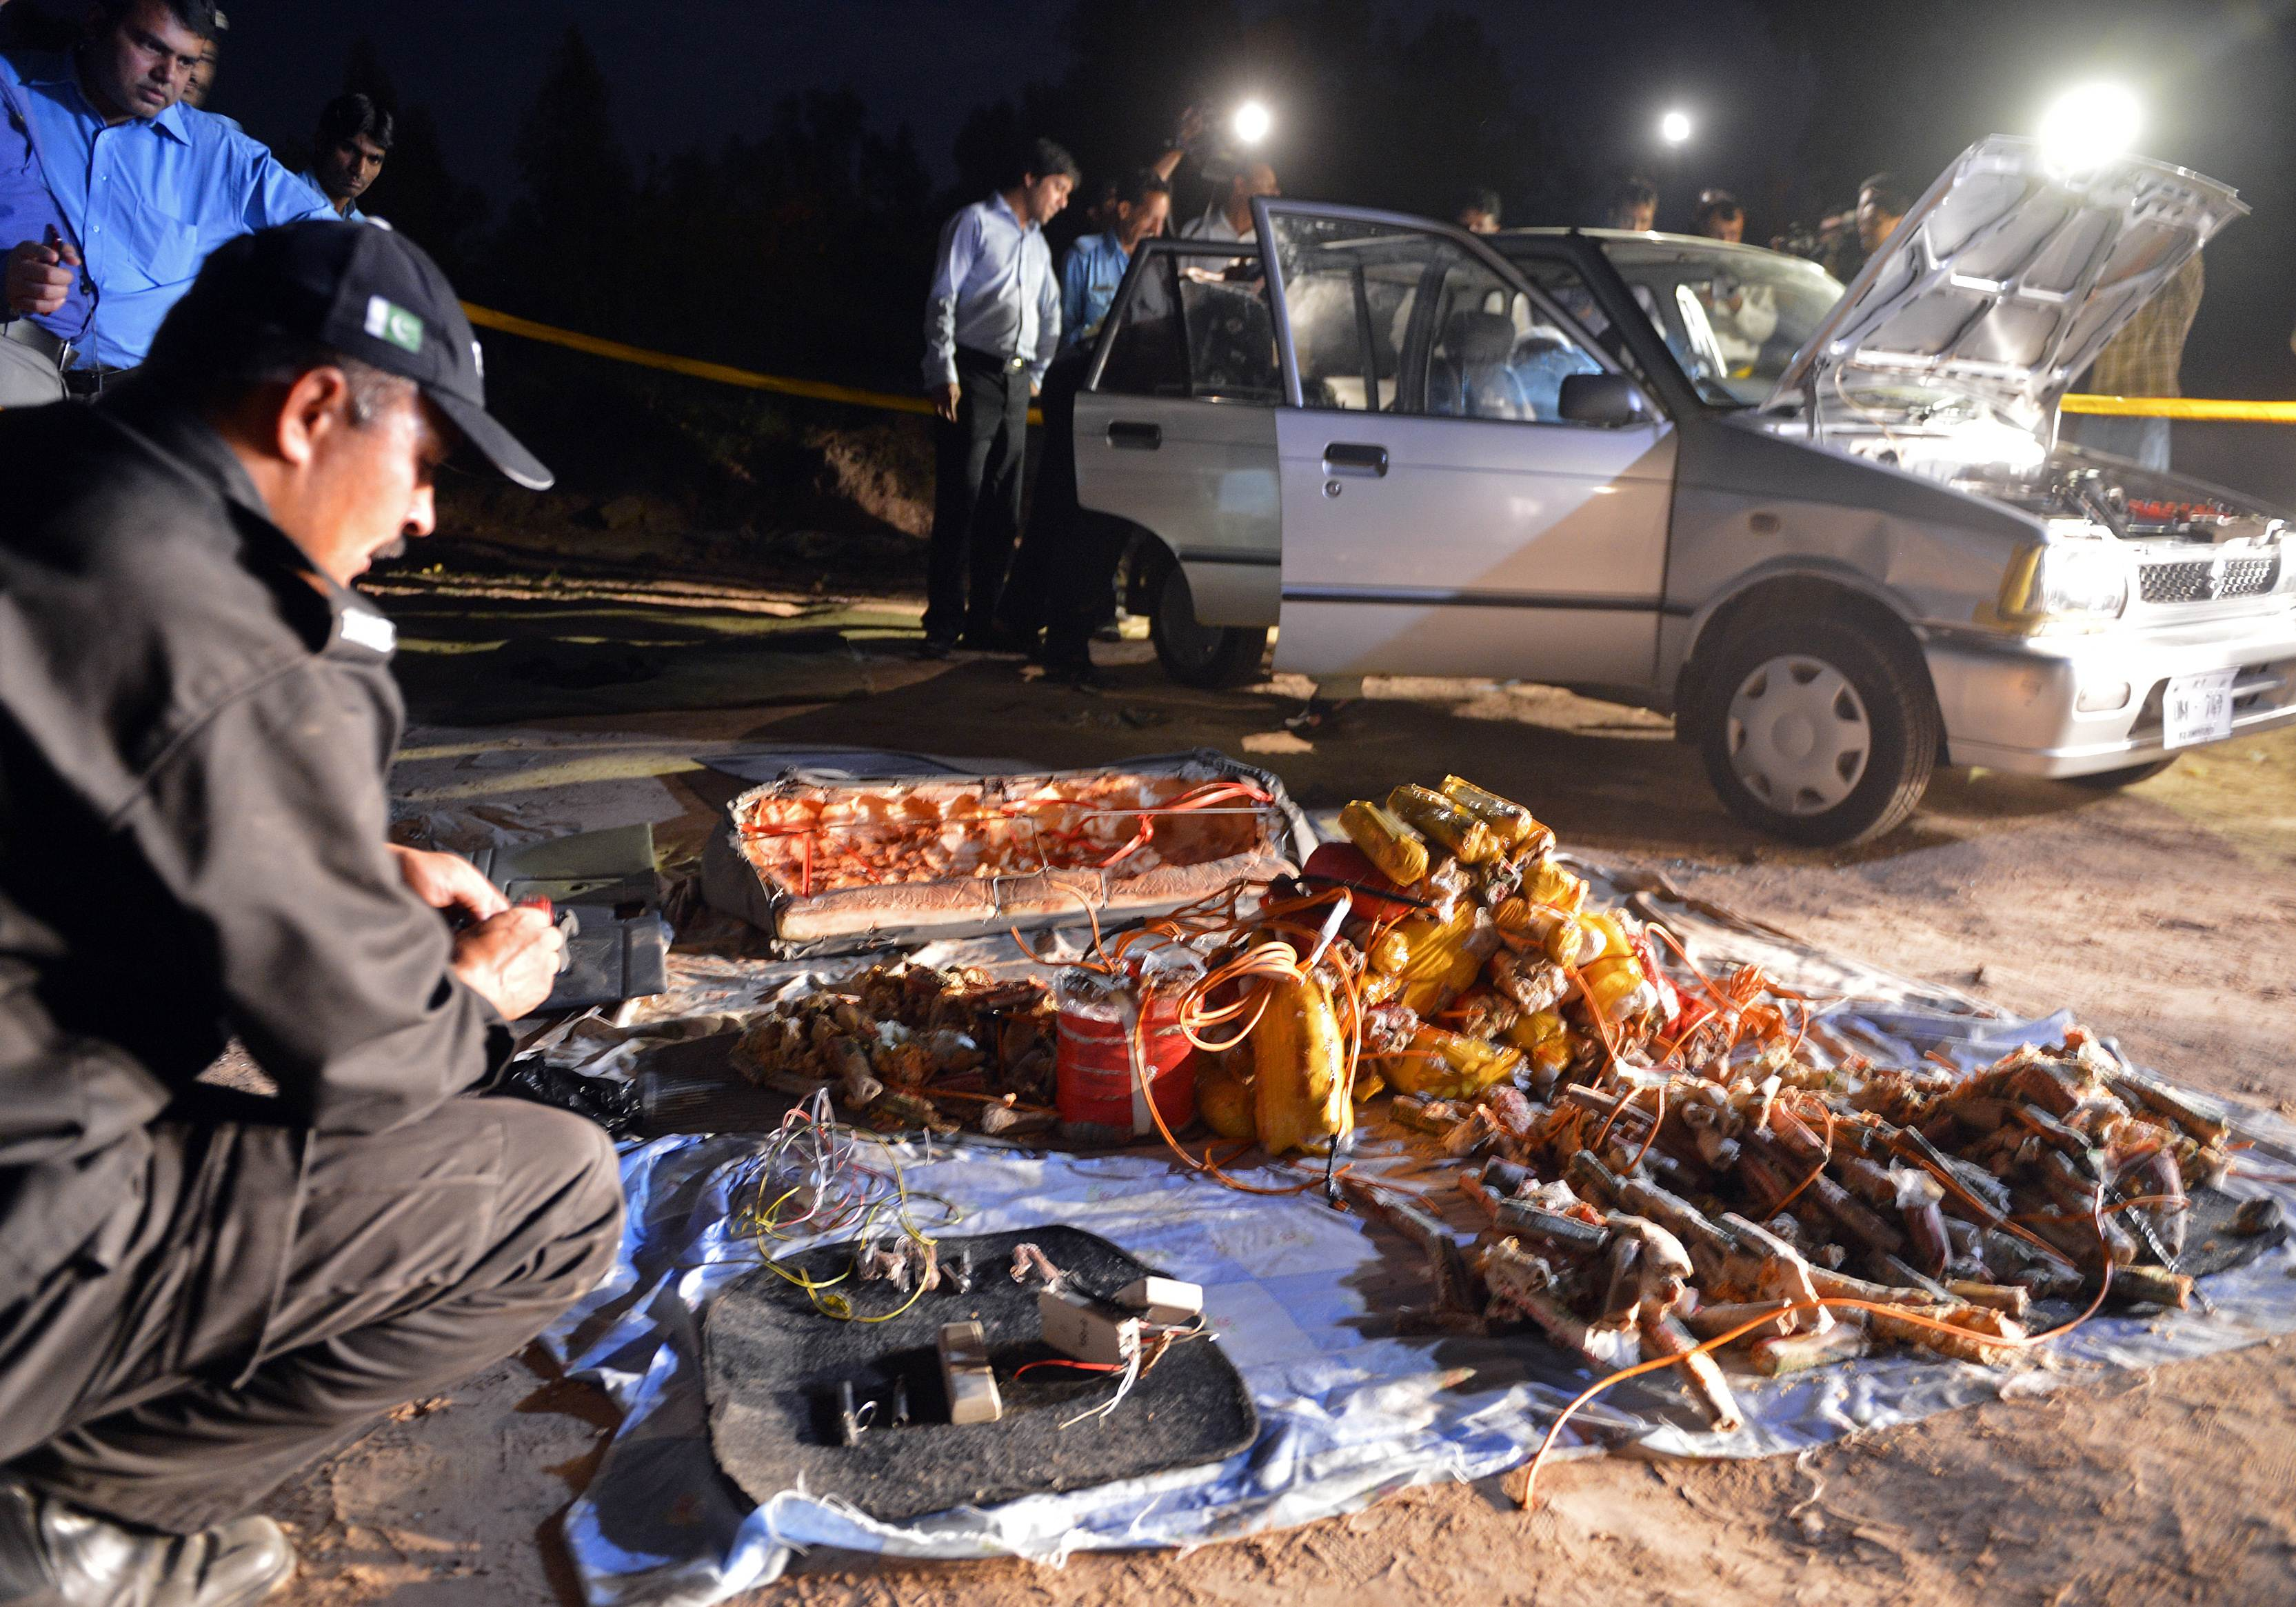 Pakistani security officials search a vehicle, found packed with explosives, after its seizure by police in the outskirts of Islamabad on April 23, 2013. The explosives-laden car was found parked on a roadside leading to the villa of former Pakistani military ruler Pervez Musharraf, where he is under house arrest. The Pakistani Taliban have threatened to assassinate the former military ruler who escaped three assassination attempts during his 1999-2008 rule who lost public support during his self exile. — AFP Photo